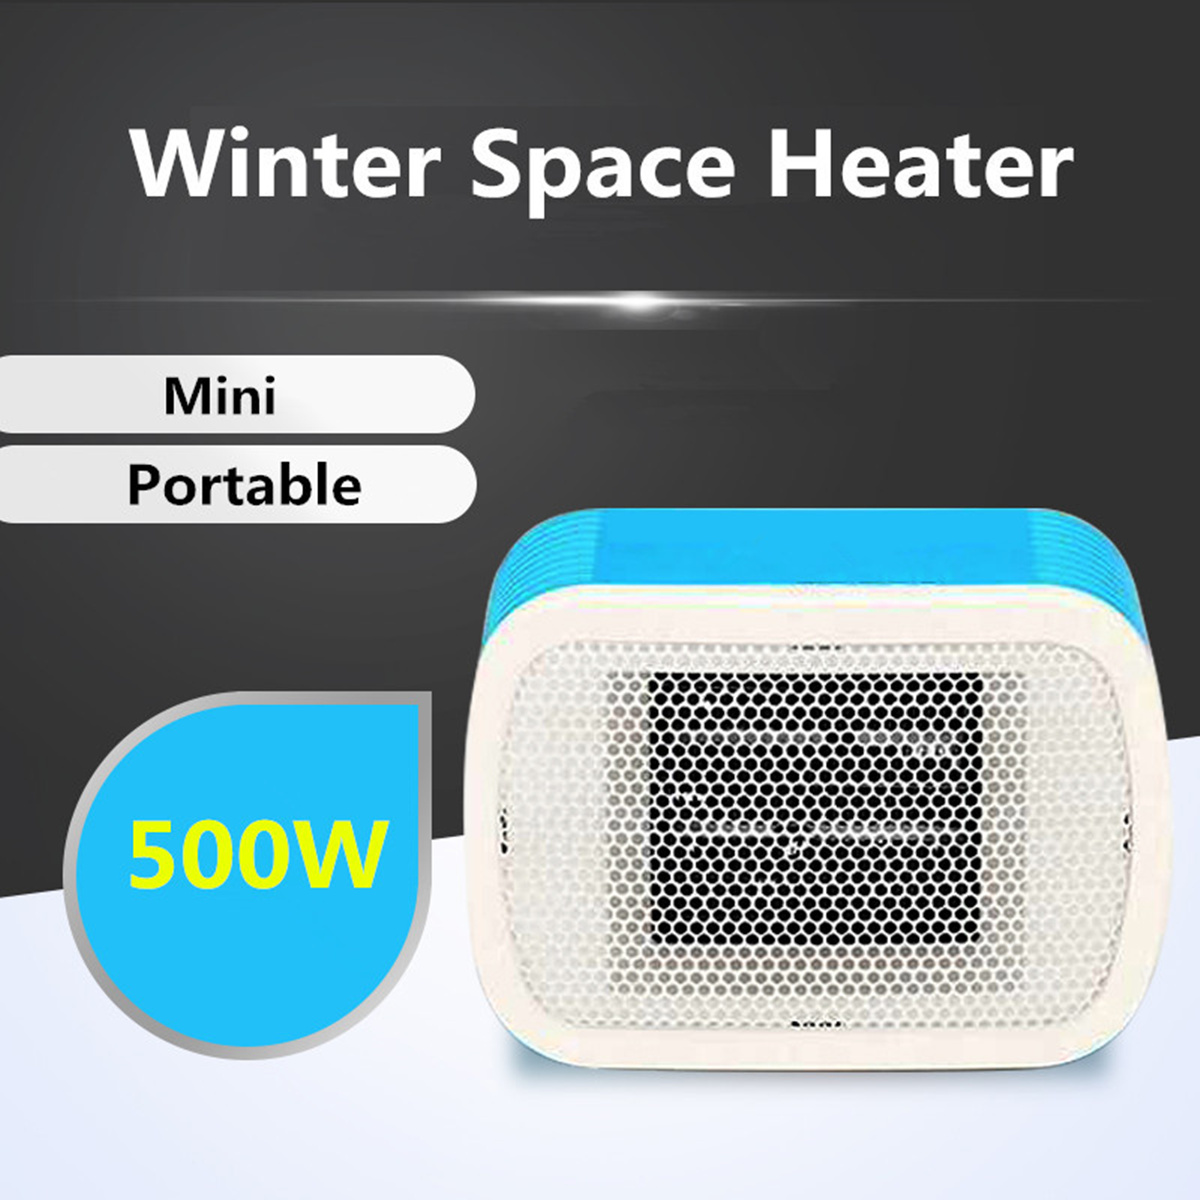 Comfort Heater Winter Hand Warmer Fan Portable Mini Electric Heater Desktop Energy